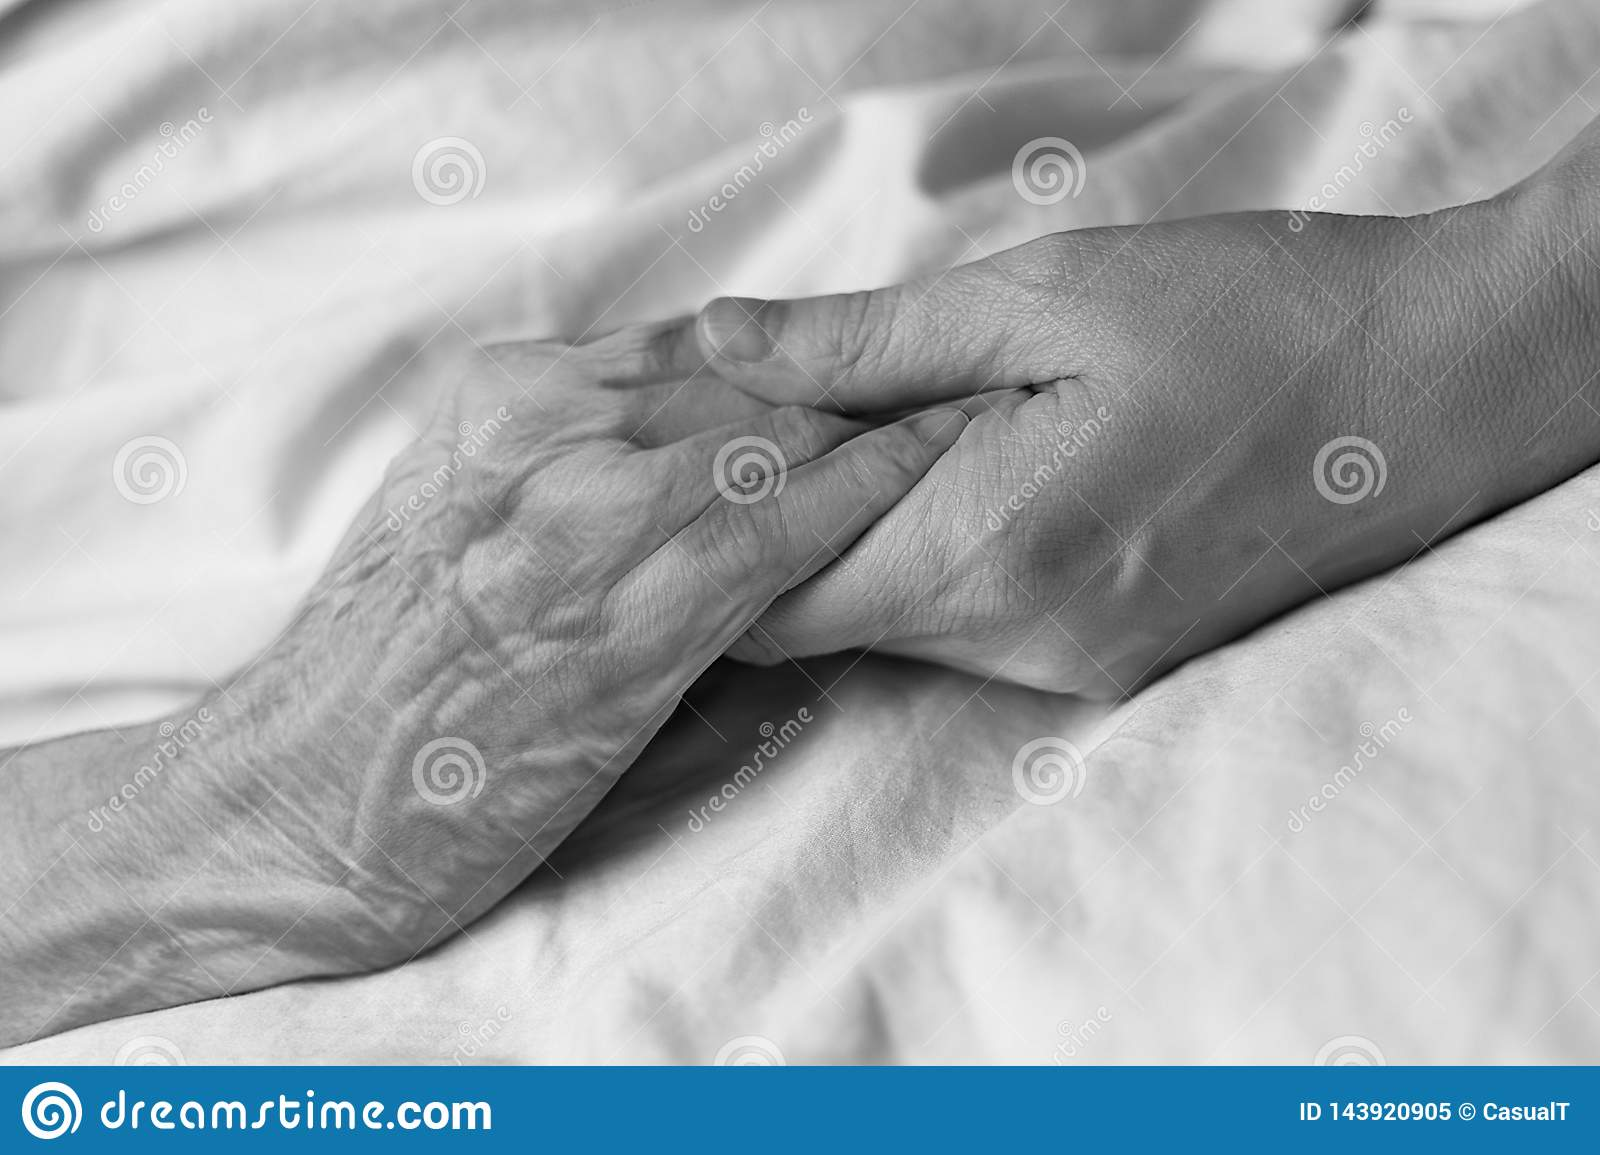 A young woman holding the hand of an old woman in a hospital bed, black & white